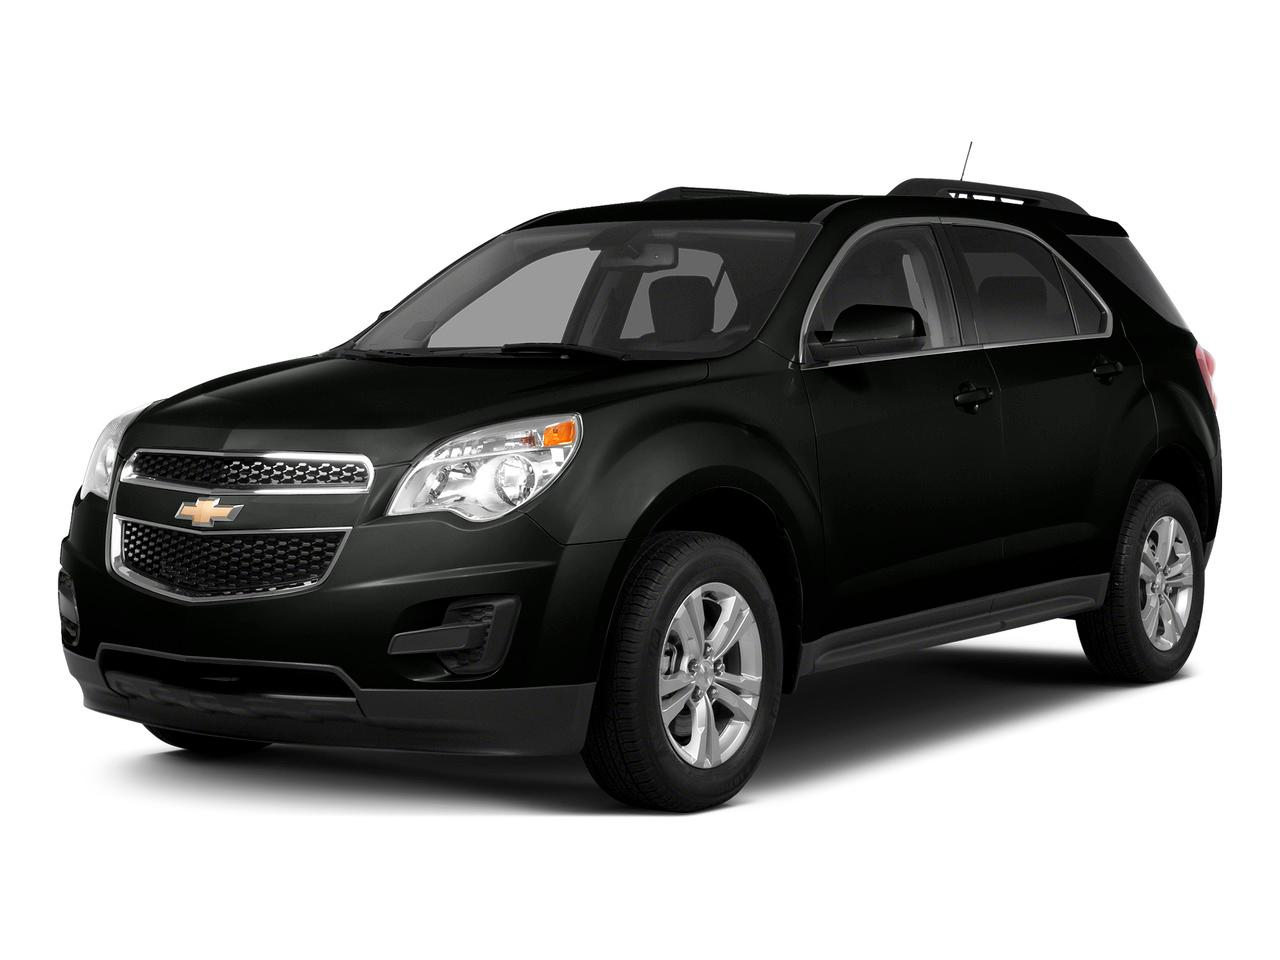 2015 Chevrolet Equinox Vehicle Photo in Menomonie, WI 54751